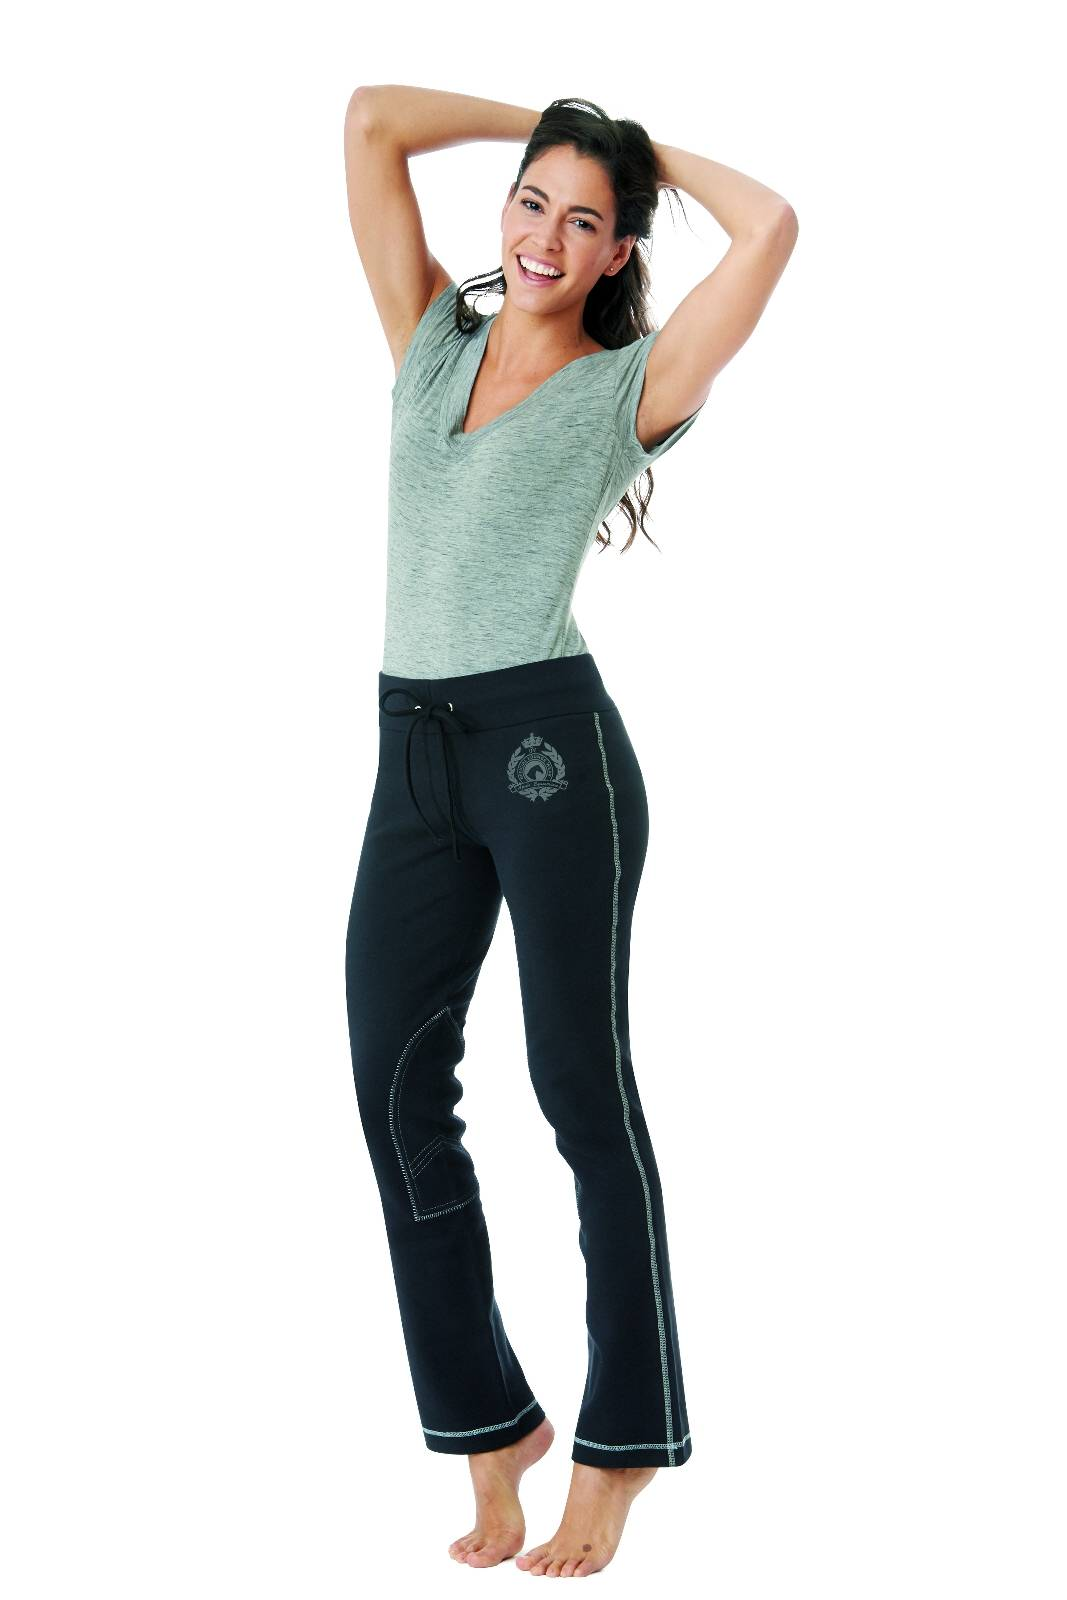 Ovation Apres Lounge Pant - Ladies